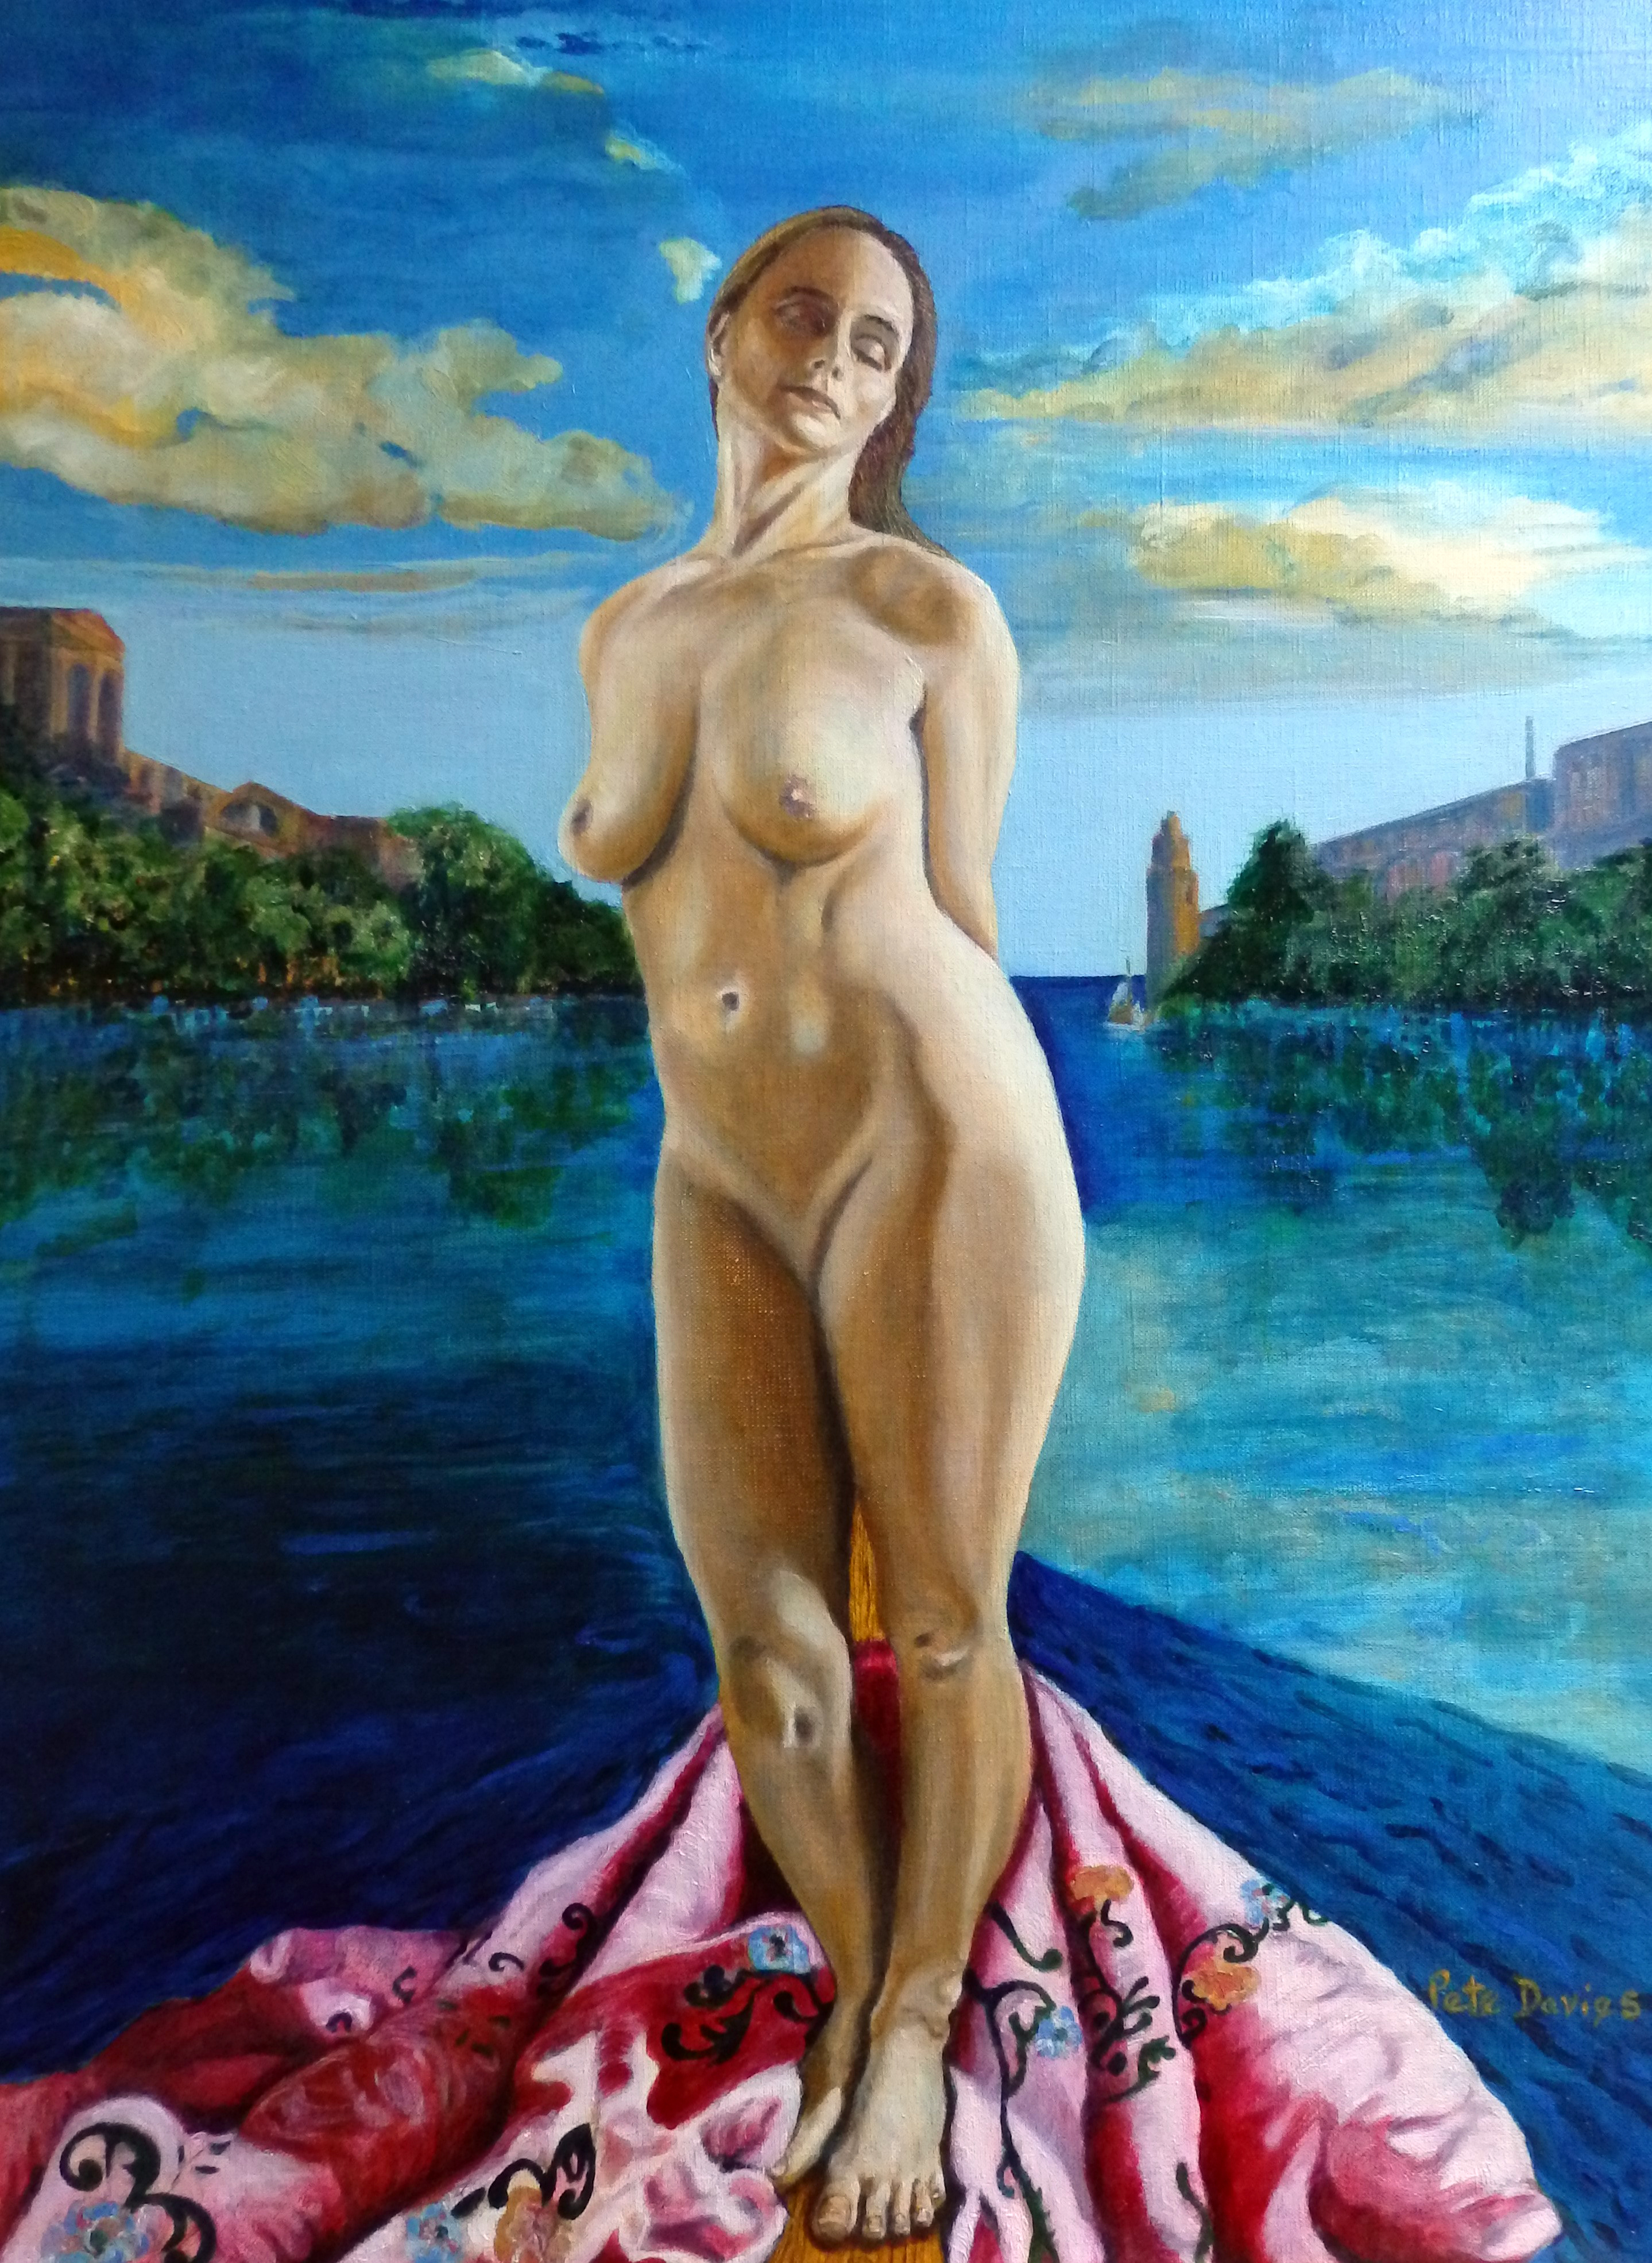 nude woman on a boat